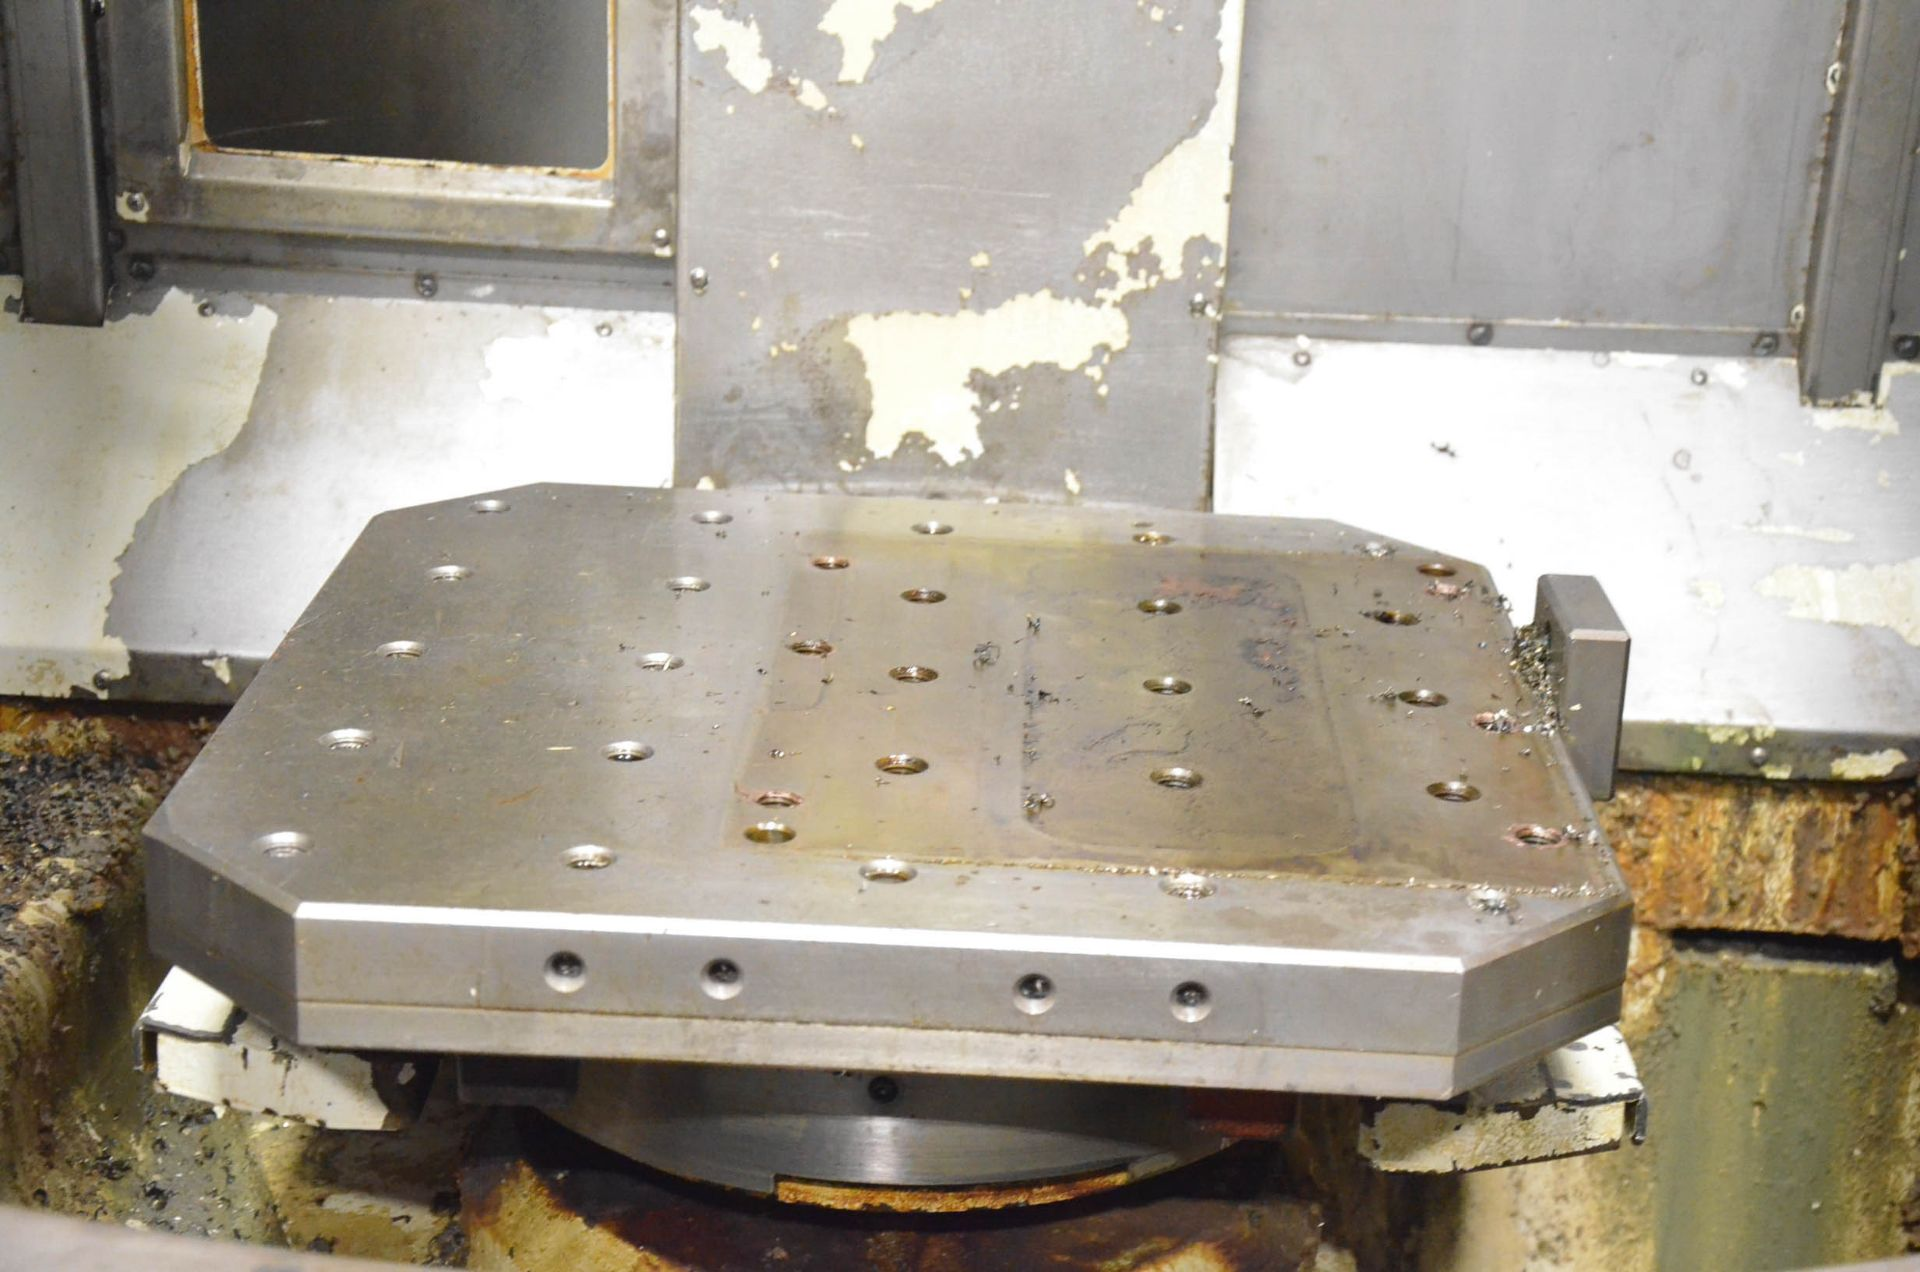 OKK (2006) HP500S TWIN-PALLET CNC HORIZONTAL MACHINING CENTER WITH FANUC 180I S-MB CNC CONTROL, 19. - Image 3 of 6